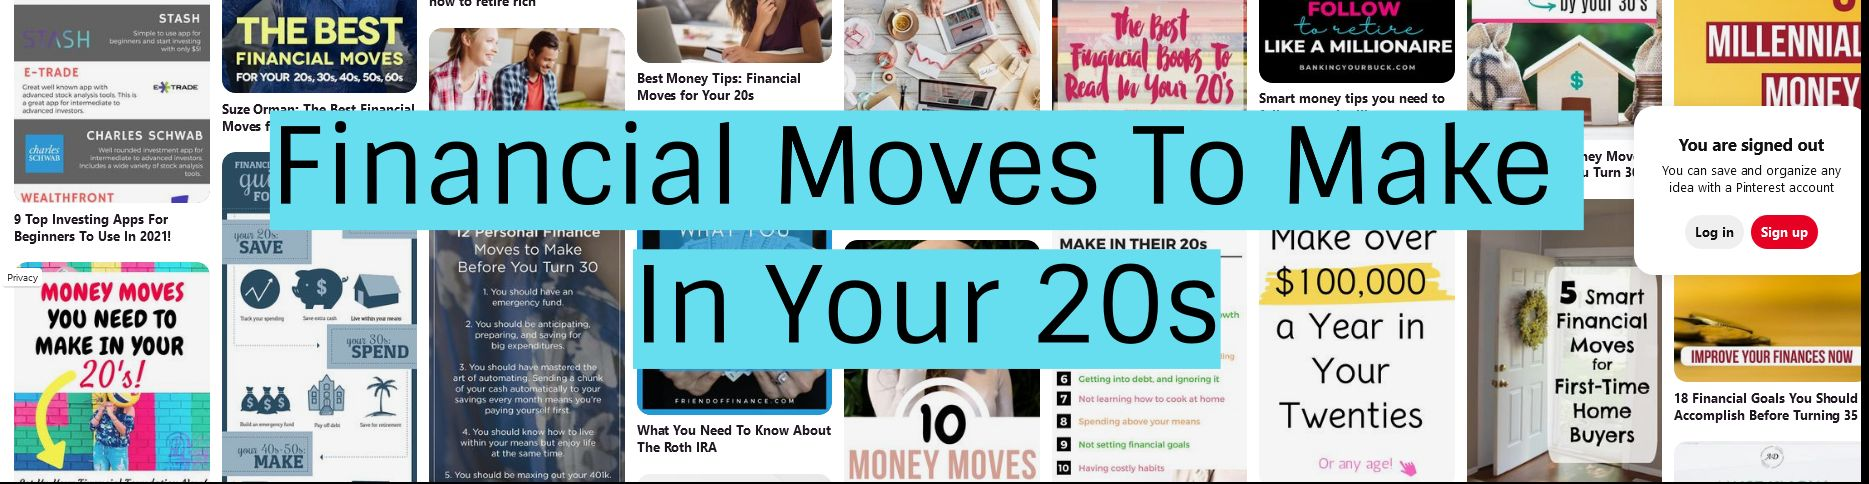 Financial Moves To Make In Your 20s